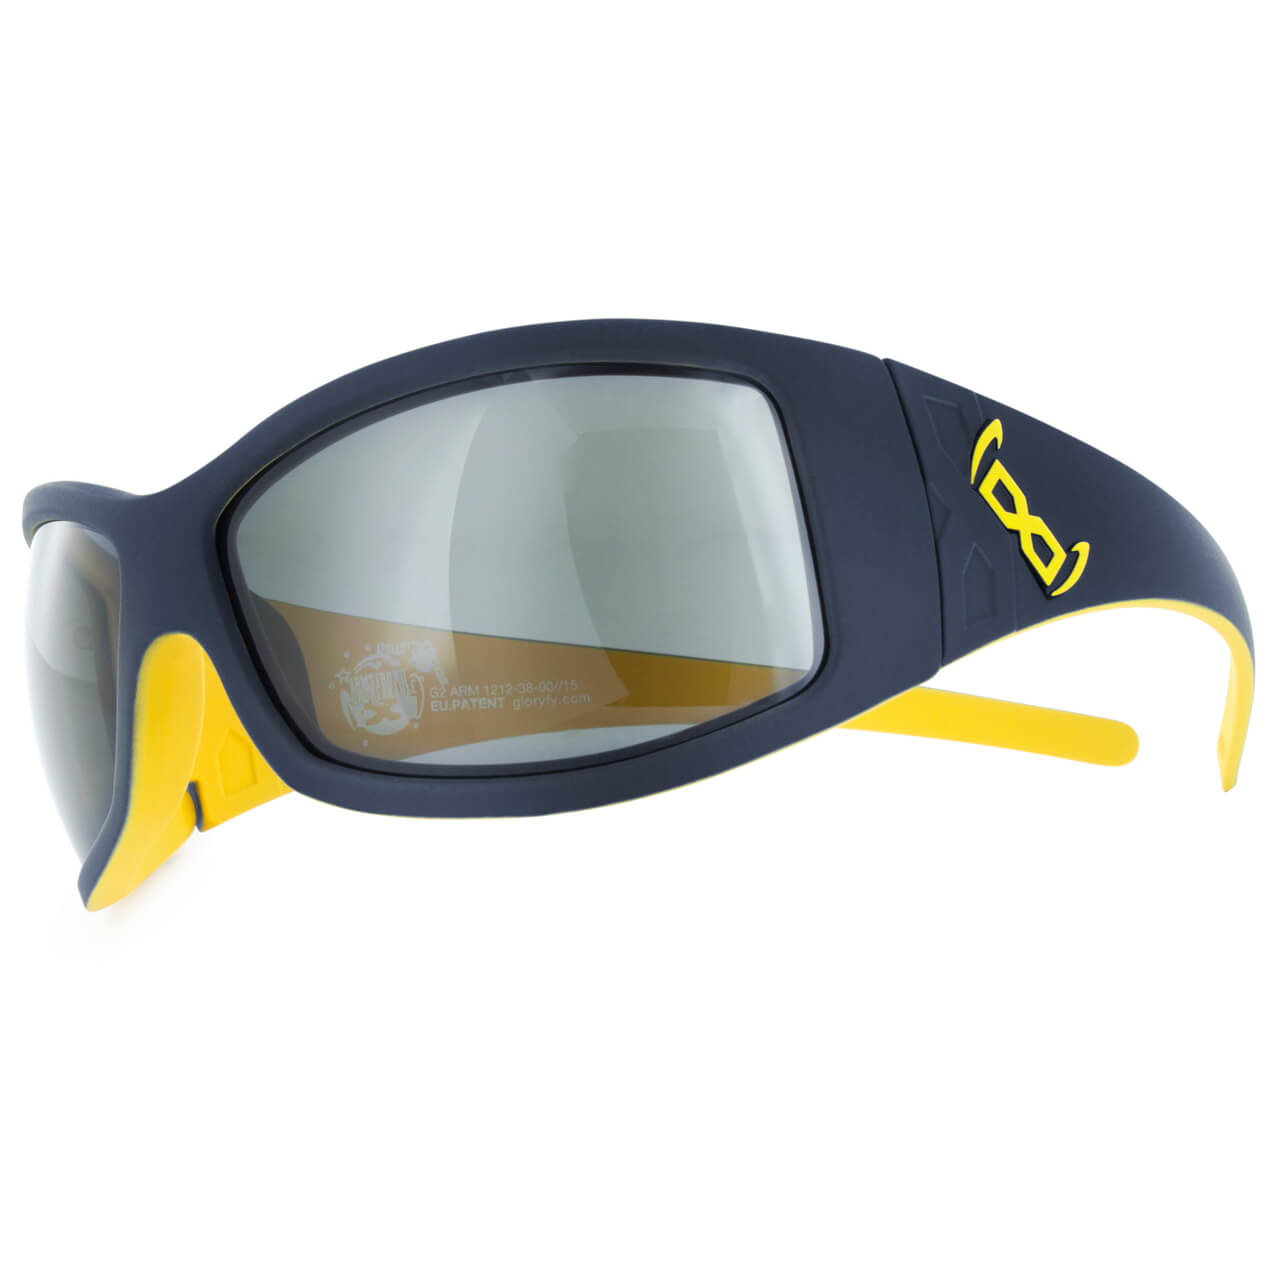 Gloryfy G2 armstrong Sonnenbrille dark navy/yellow 6lYzQkER4